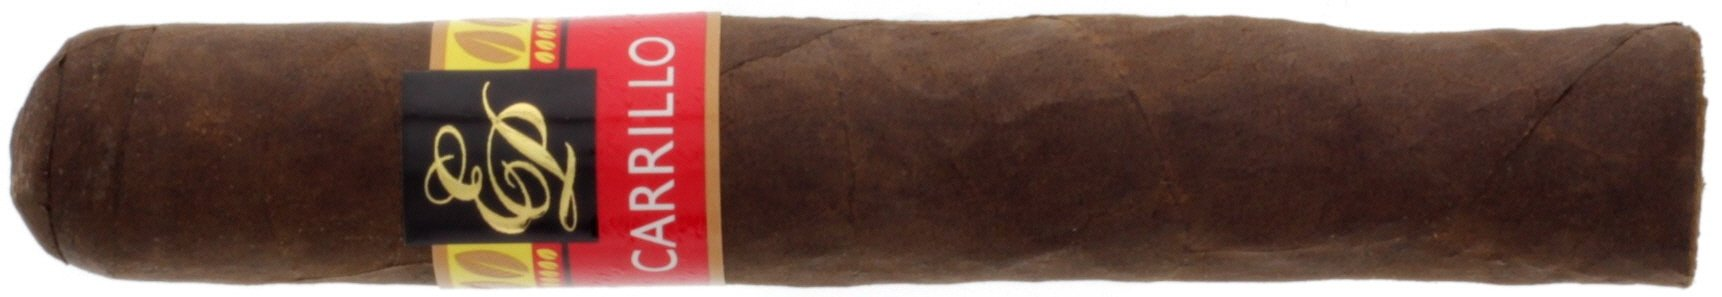 EPC Cardinal Maduro Ernesto Perez Carrillo No 52 Double Robusto